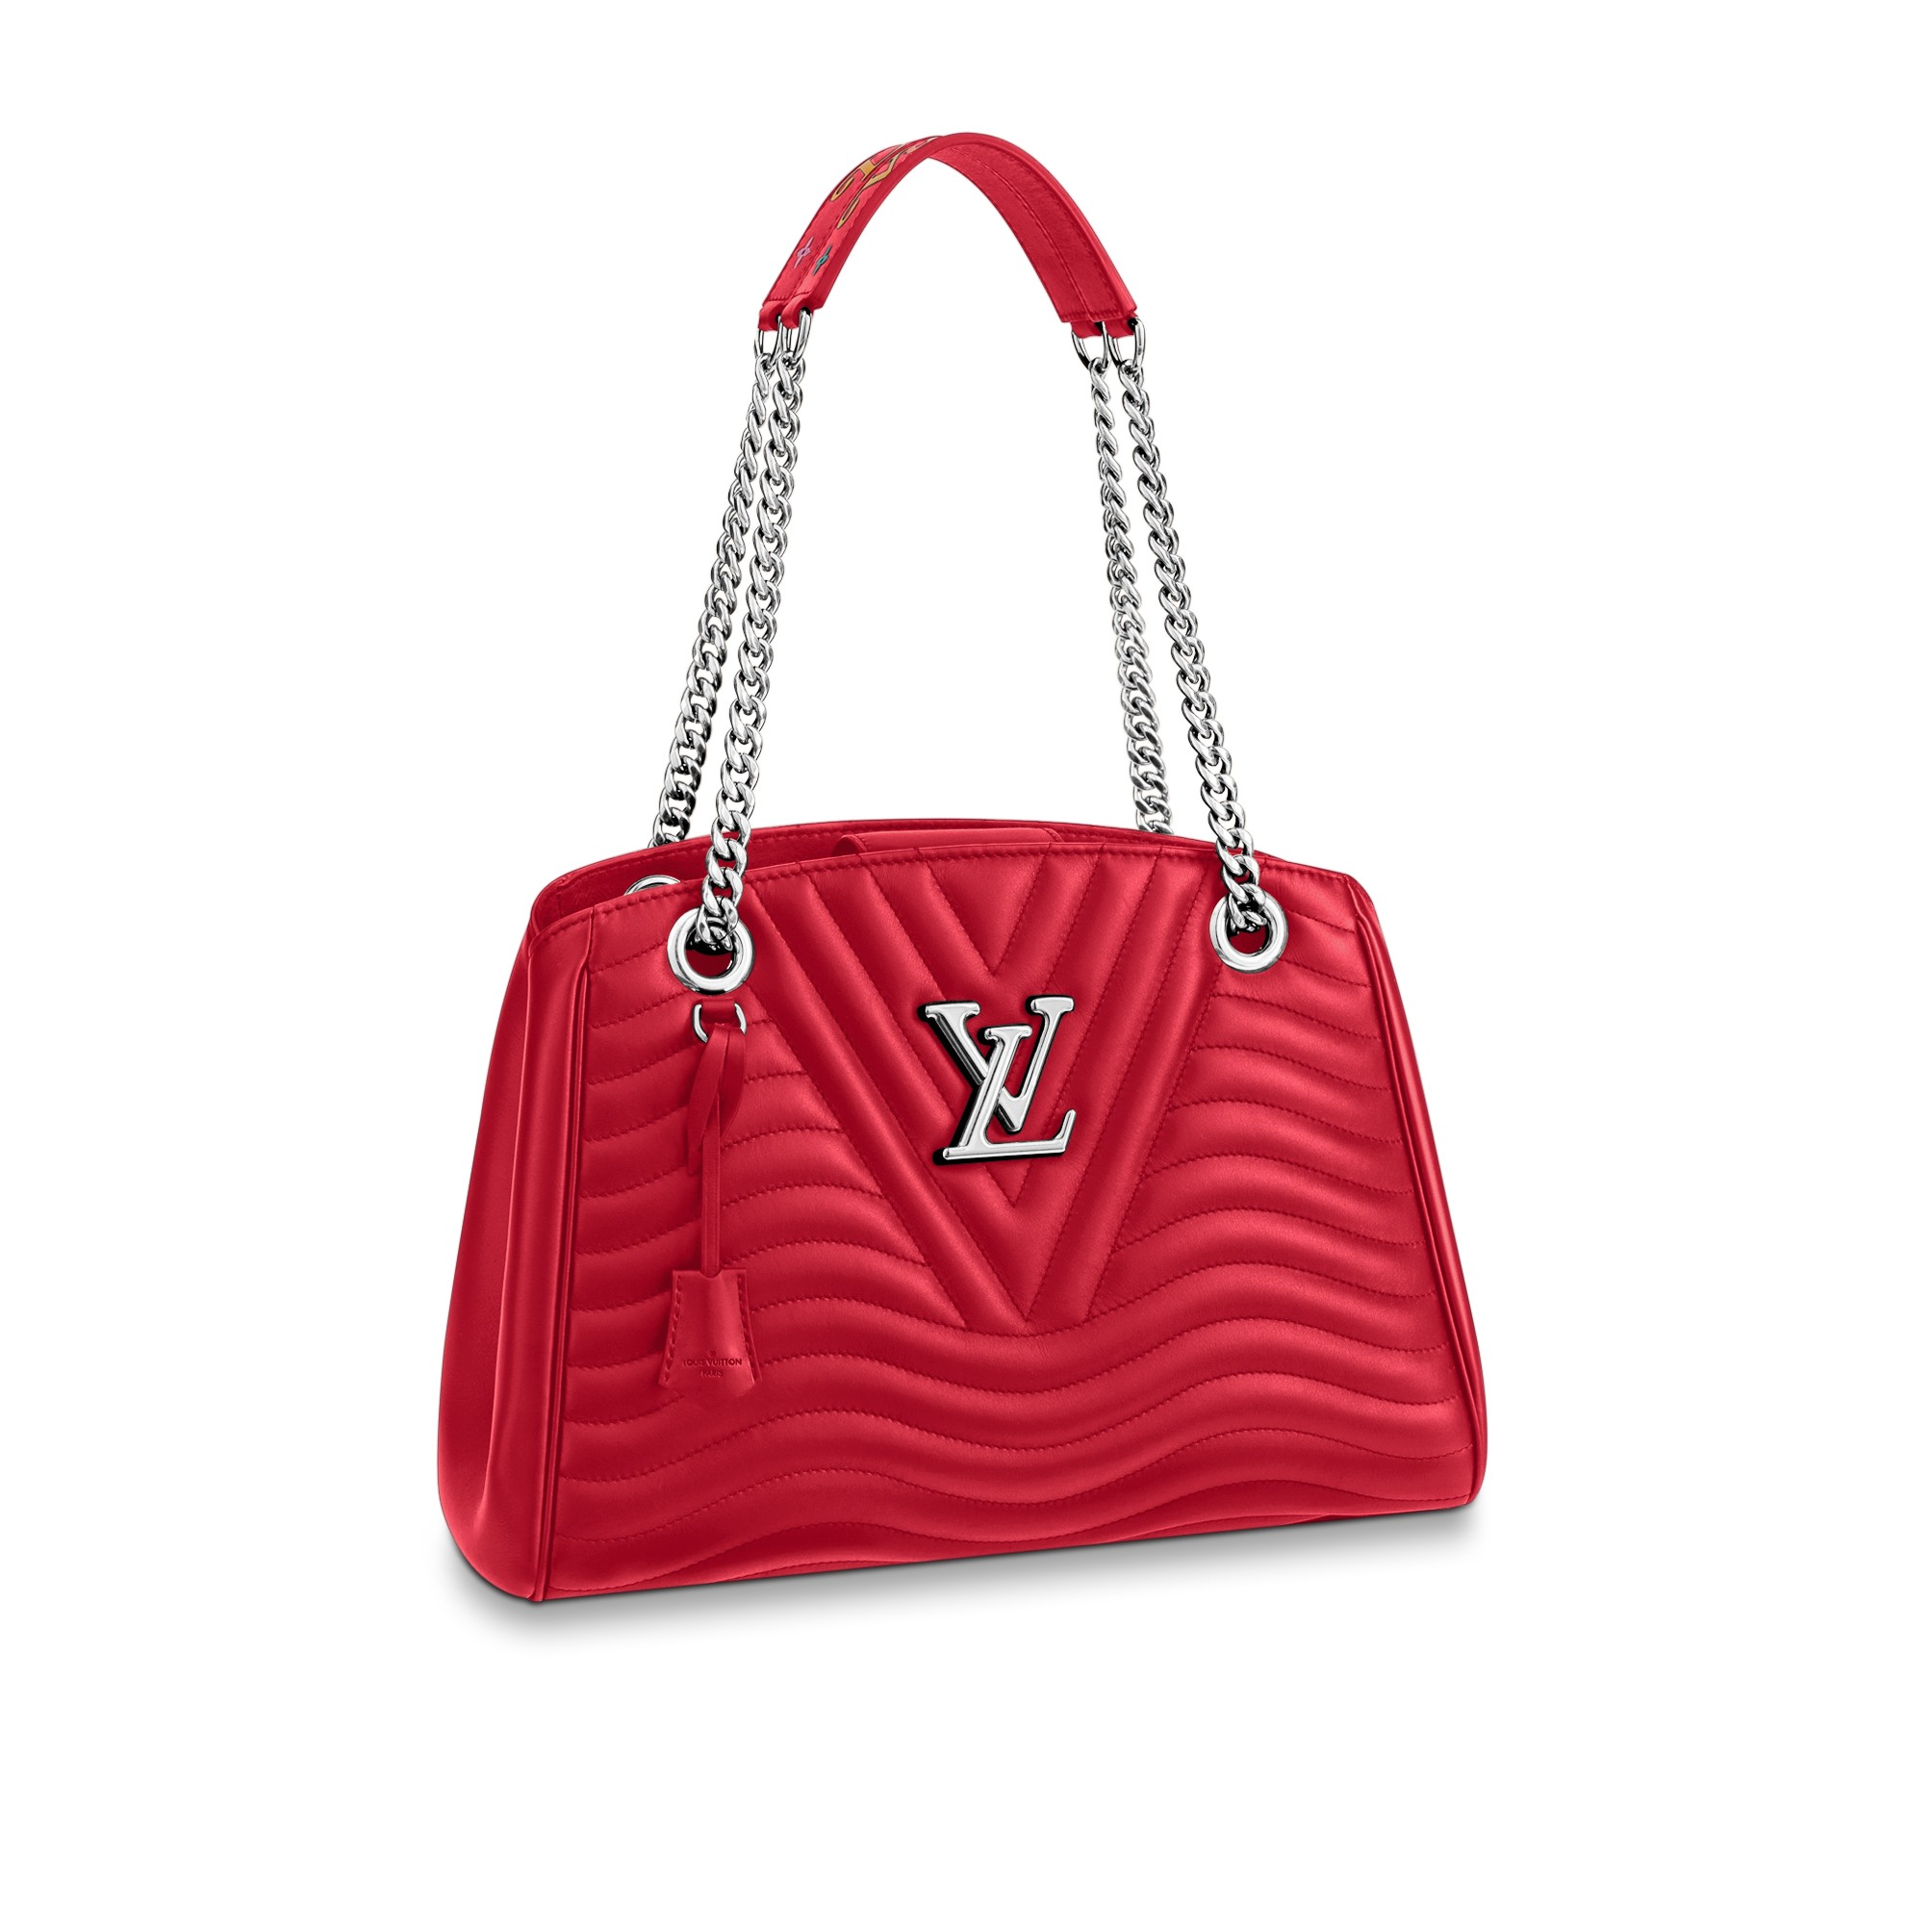 Handbags From The Louis Vuitton New Wave Collection Like Chain Tote Above Come In Classic Red And Black Colours As Well Smoothie Pink